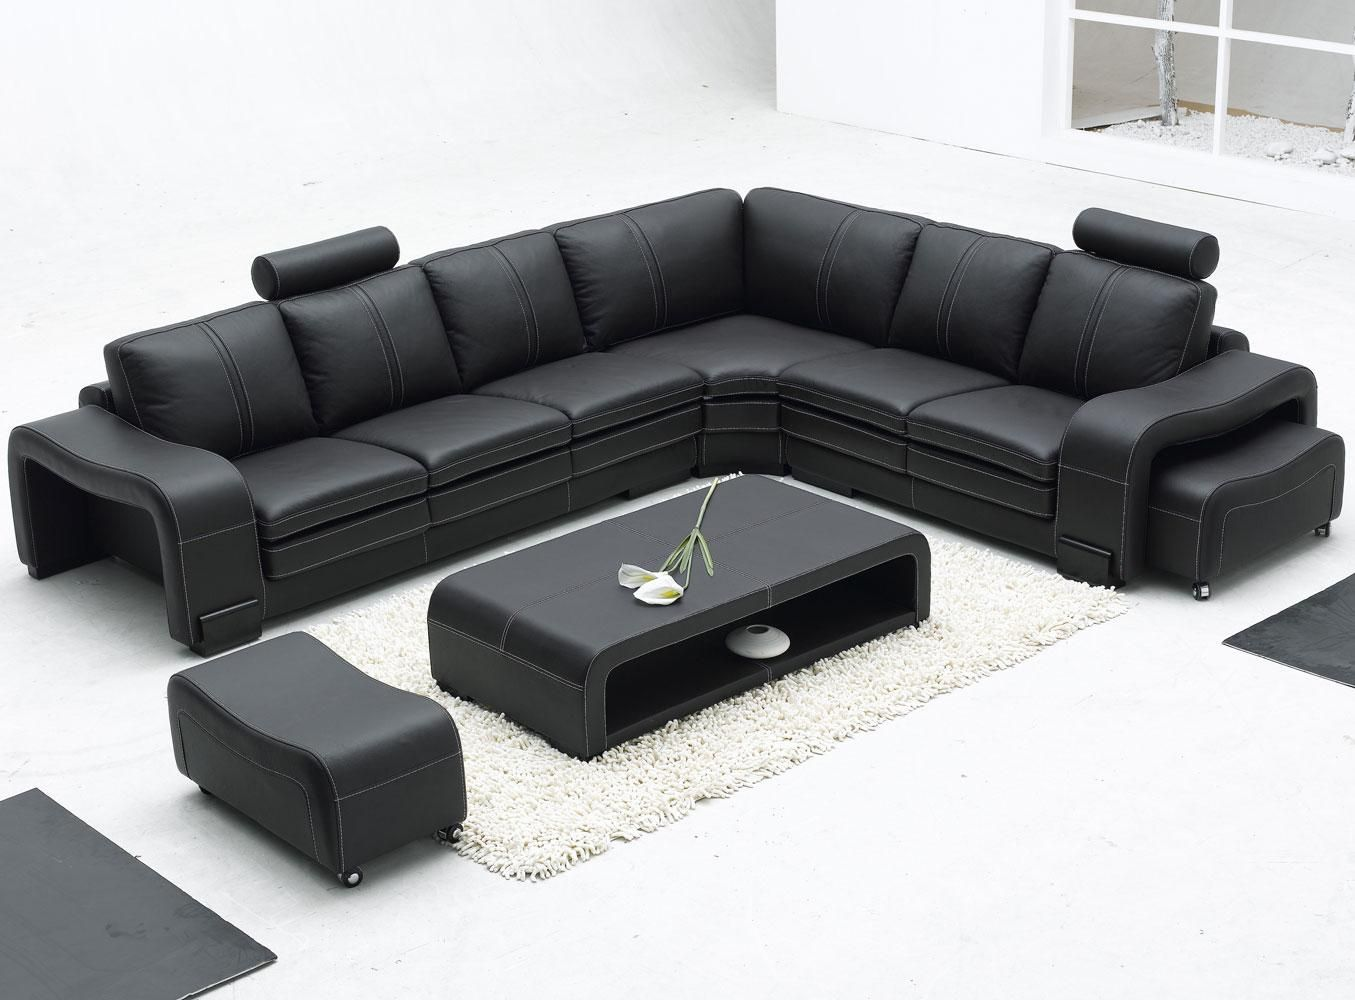 Sectional Leather Sofa | parth | Leather corner sofa, Sofa, Sofa design